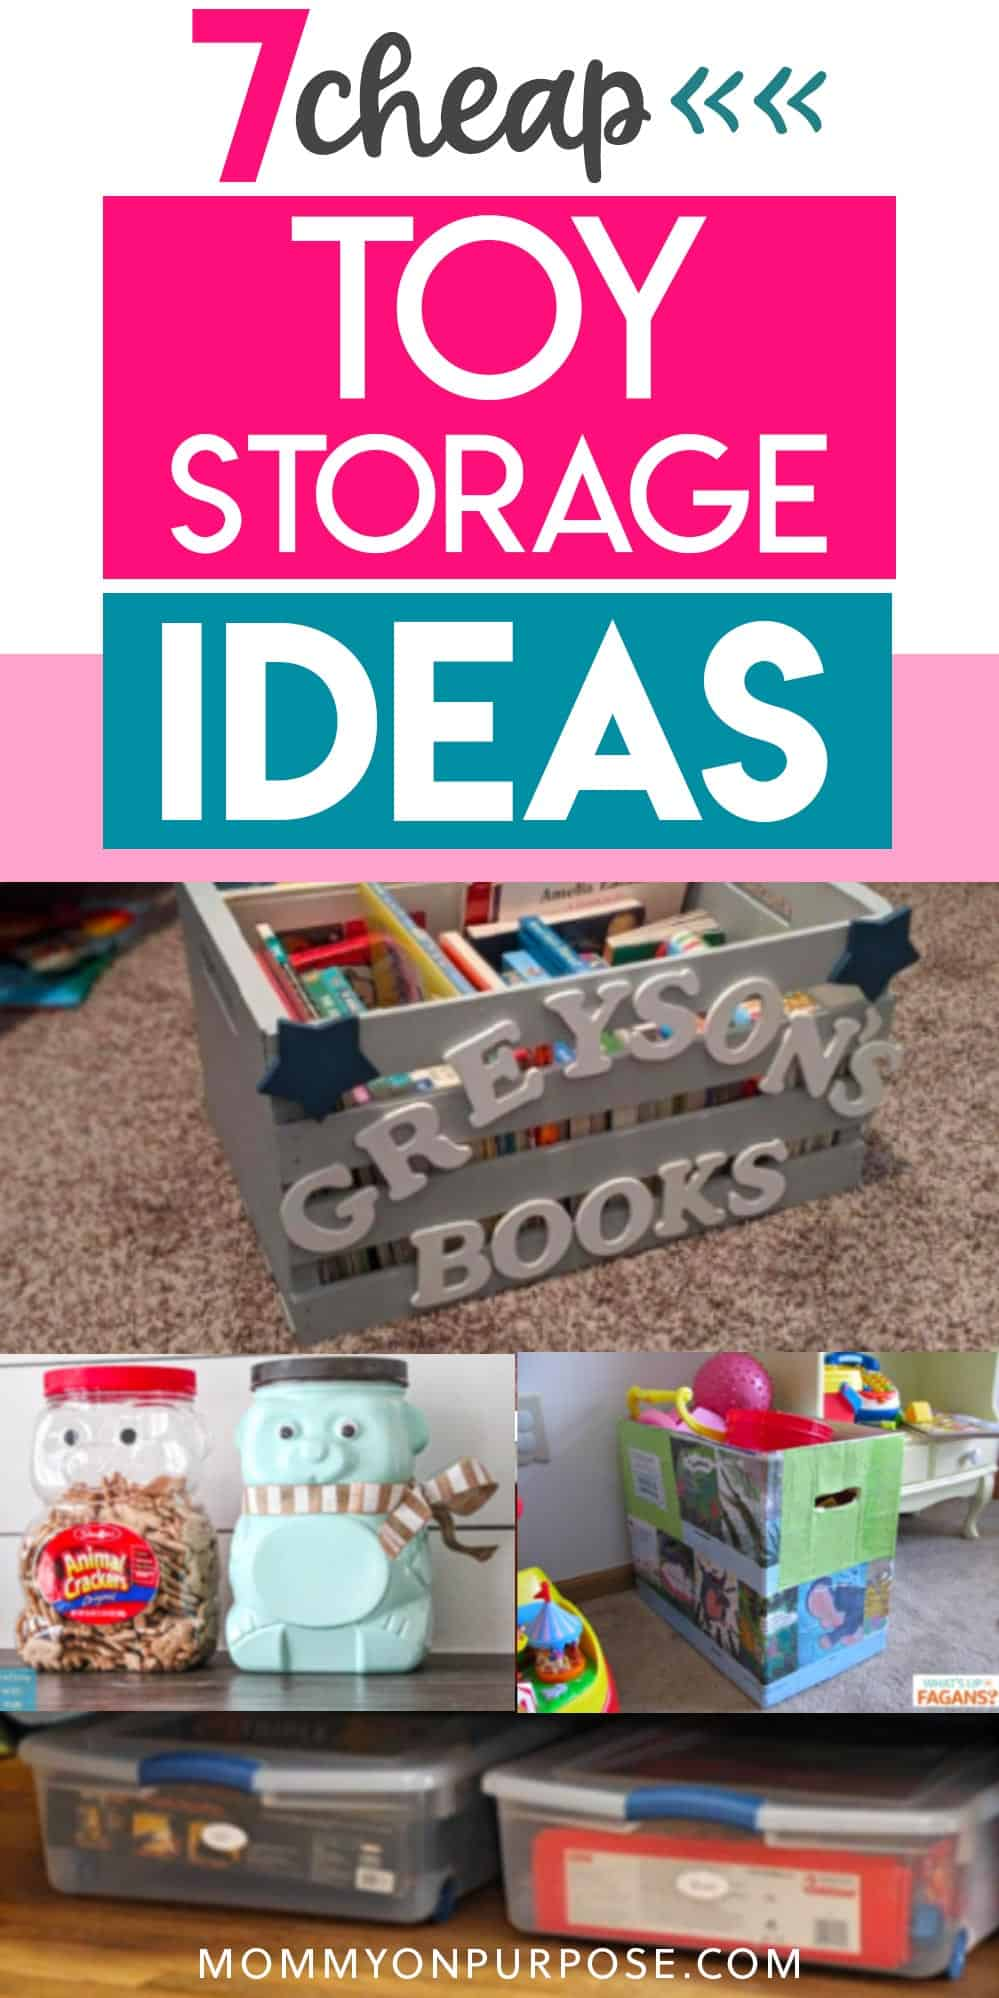 7 cheap toy storage ideas pinterest pin